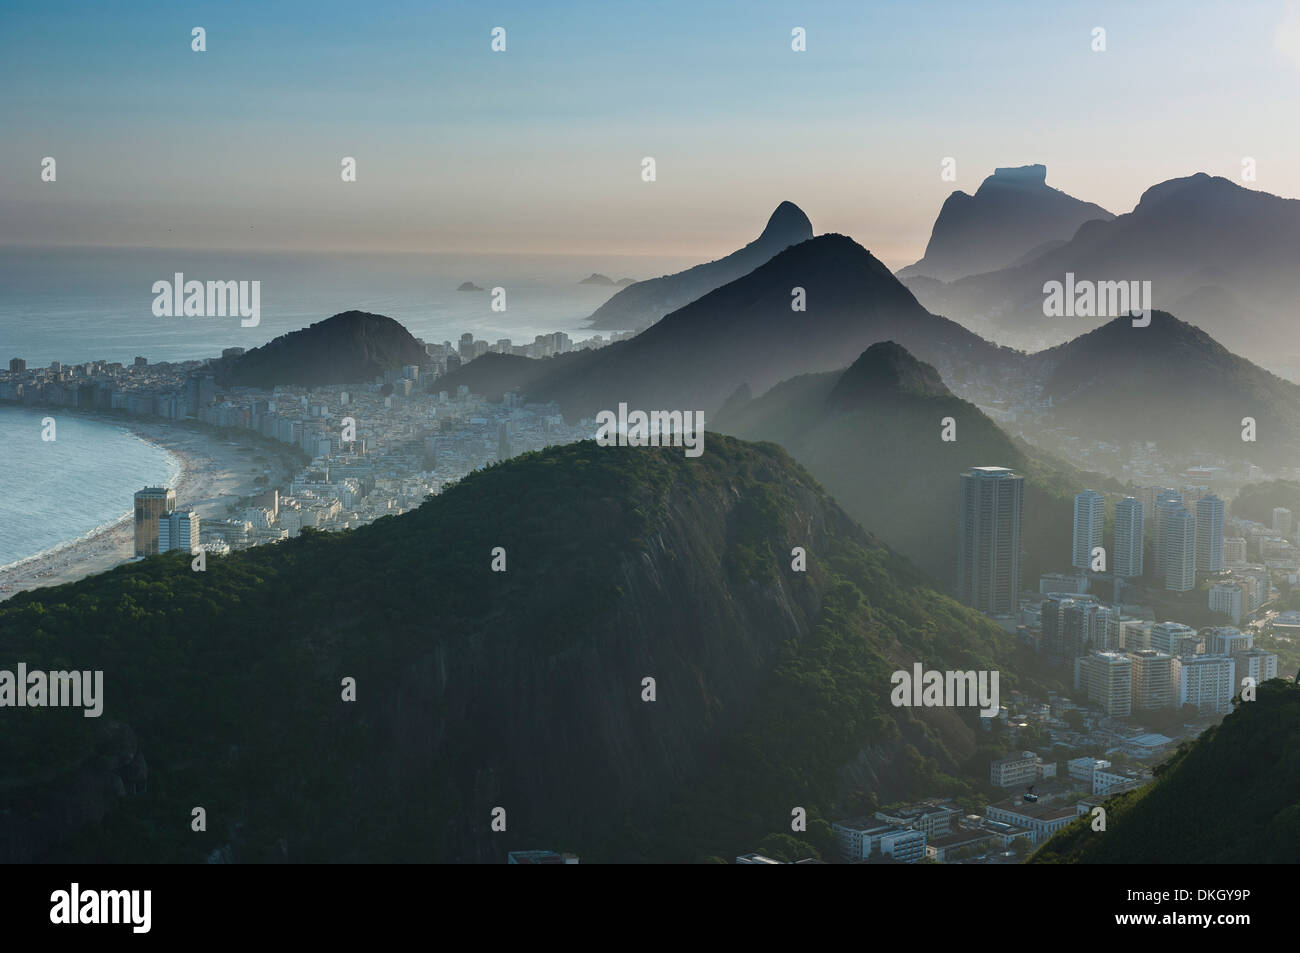 View from the Sugarloaf, Rio de Janeiro, Brazil, South America - Stock Image